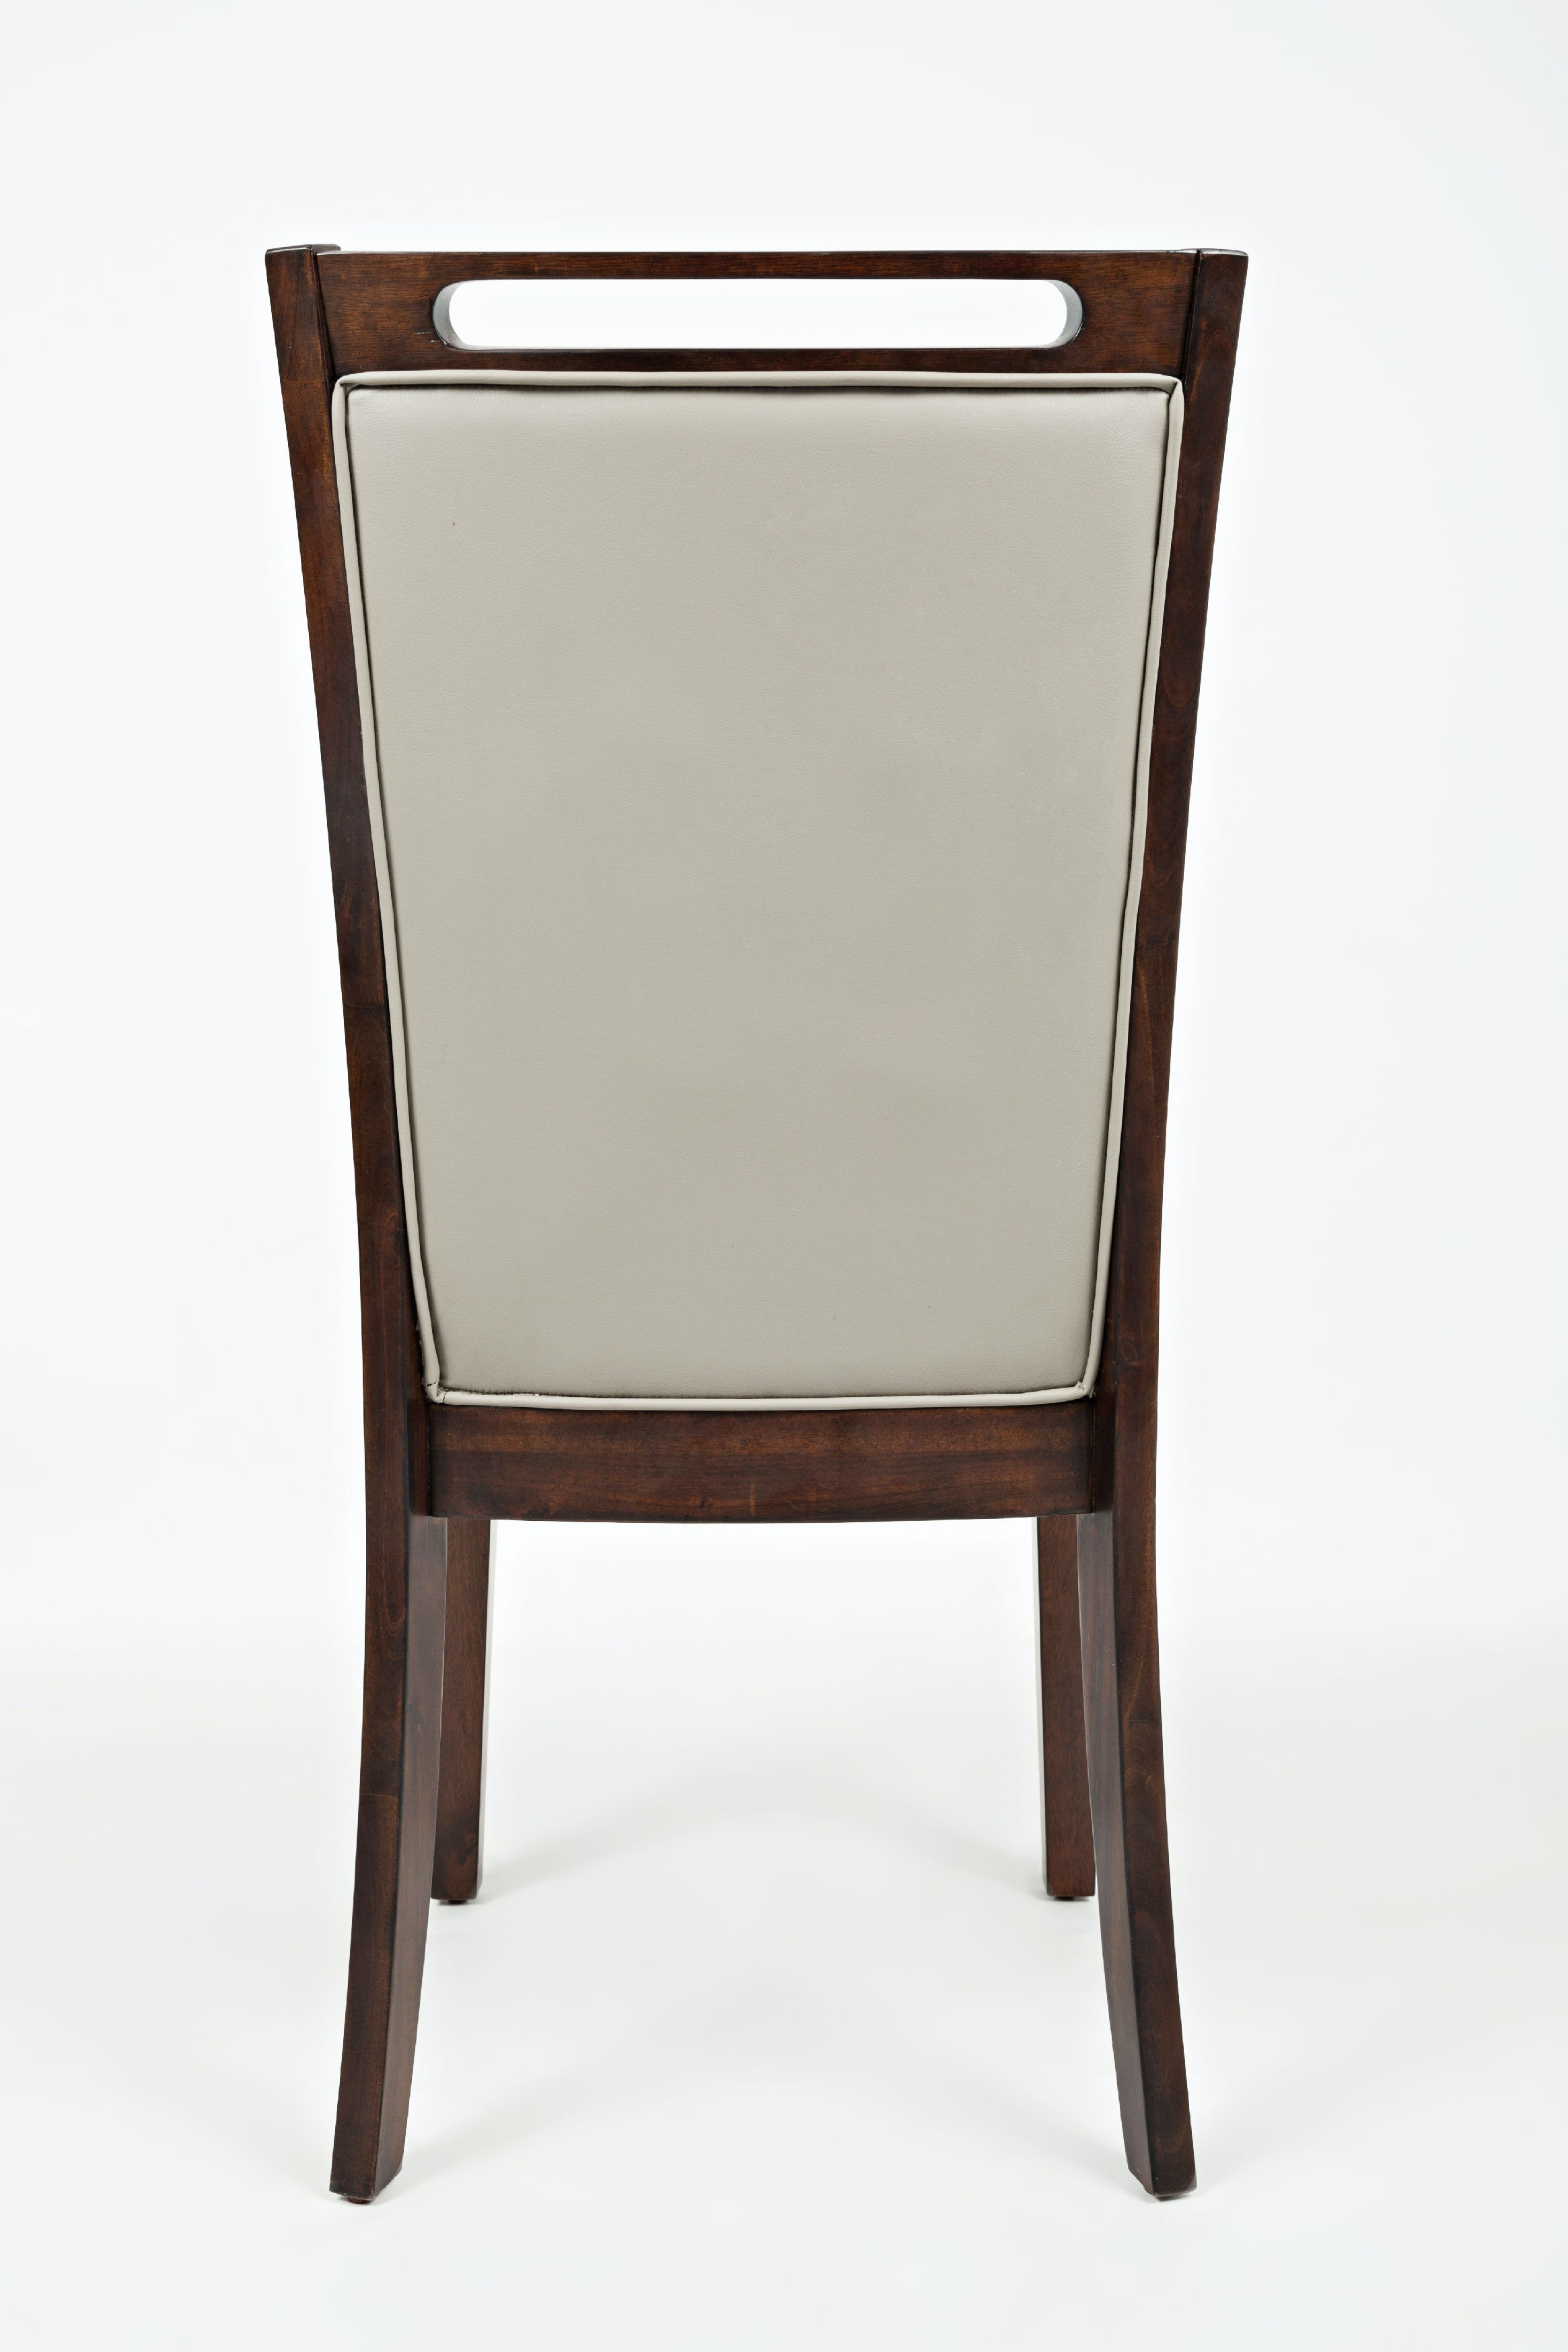 Jofran Dining Room Upholstered Dining Chair Grey PU 2Ctn  : 1672 385kd20back from www.weissfurniture.com size 2330 x 3495 jpeg 285kB